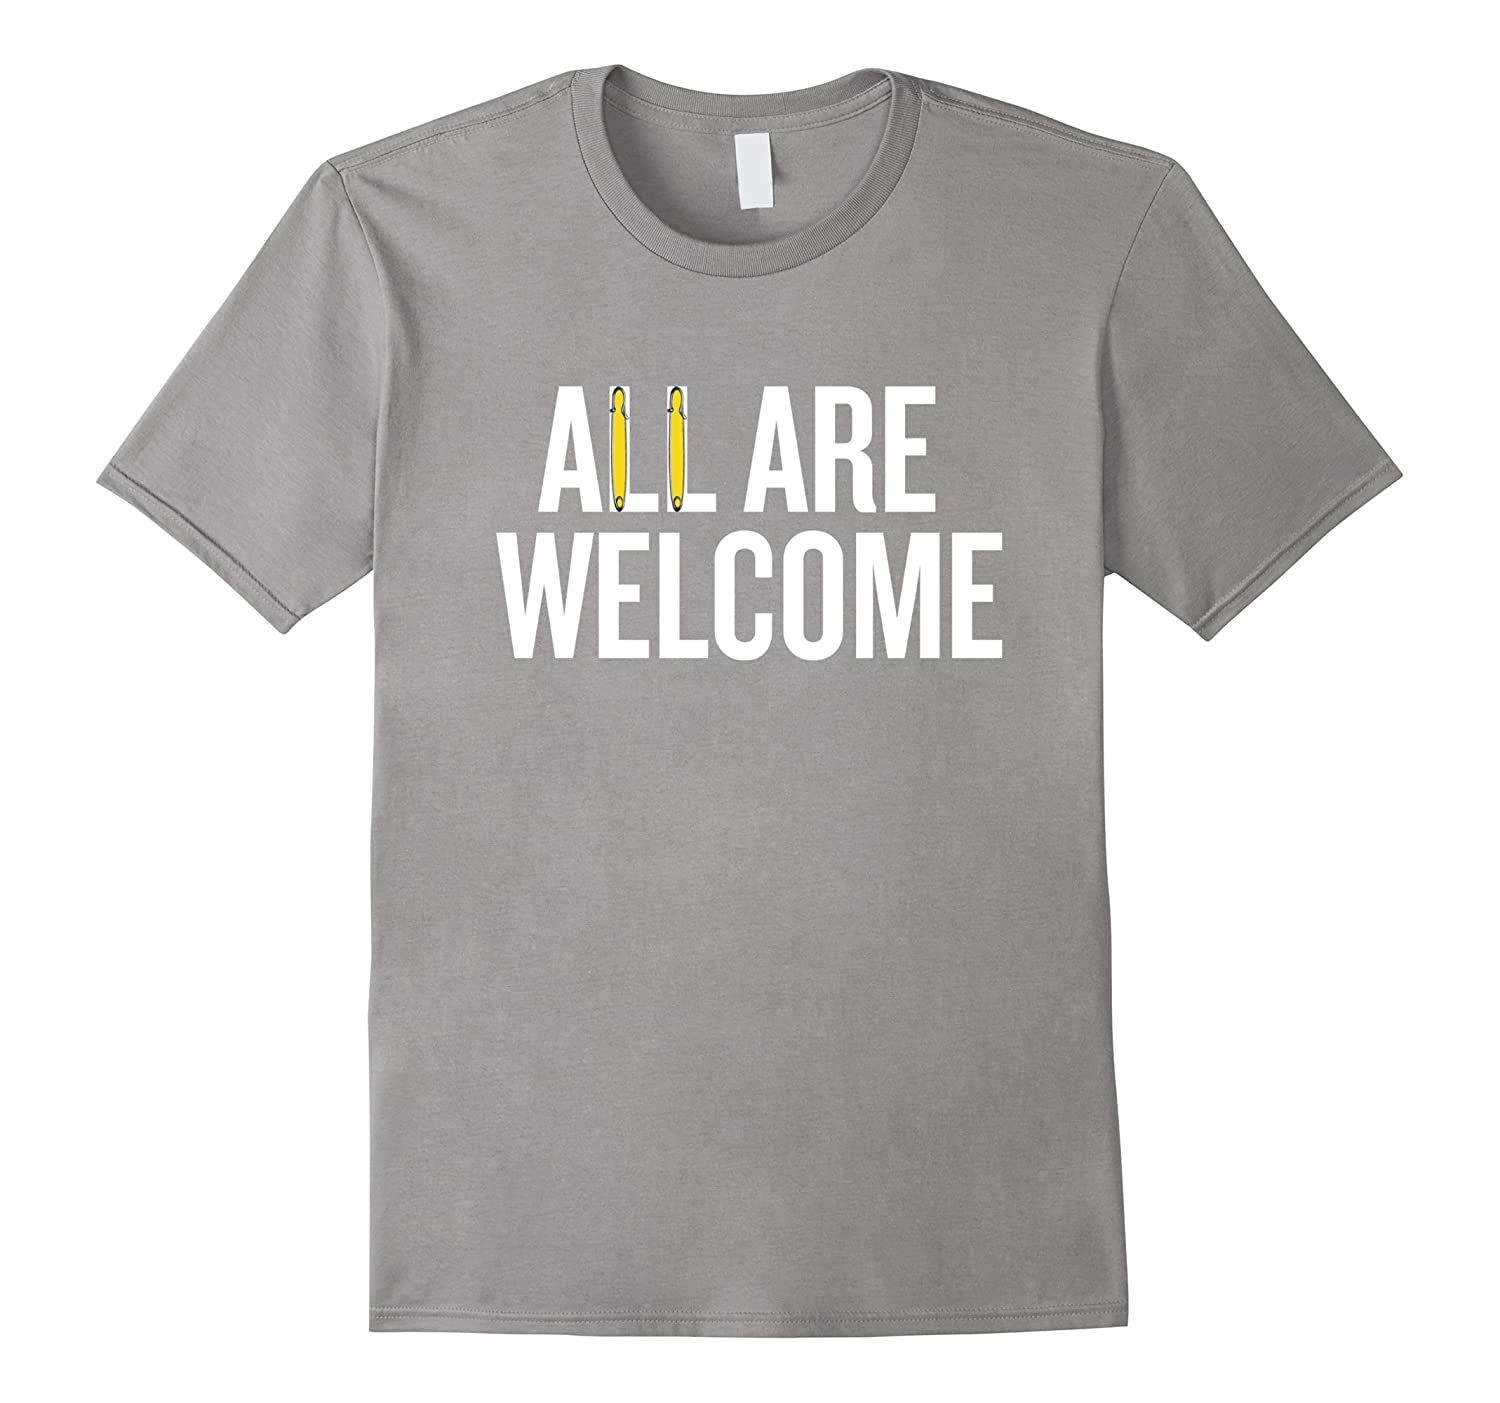 All are Welcome T-shirt with yellow safety pin graphic-FL